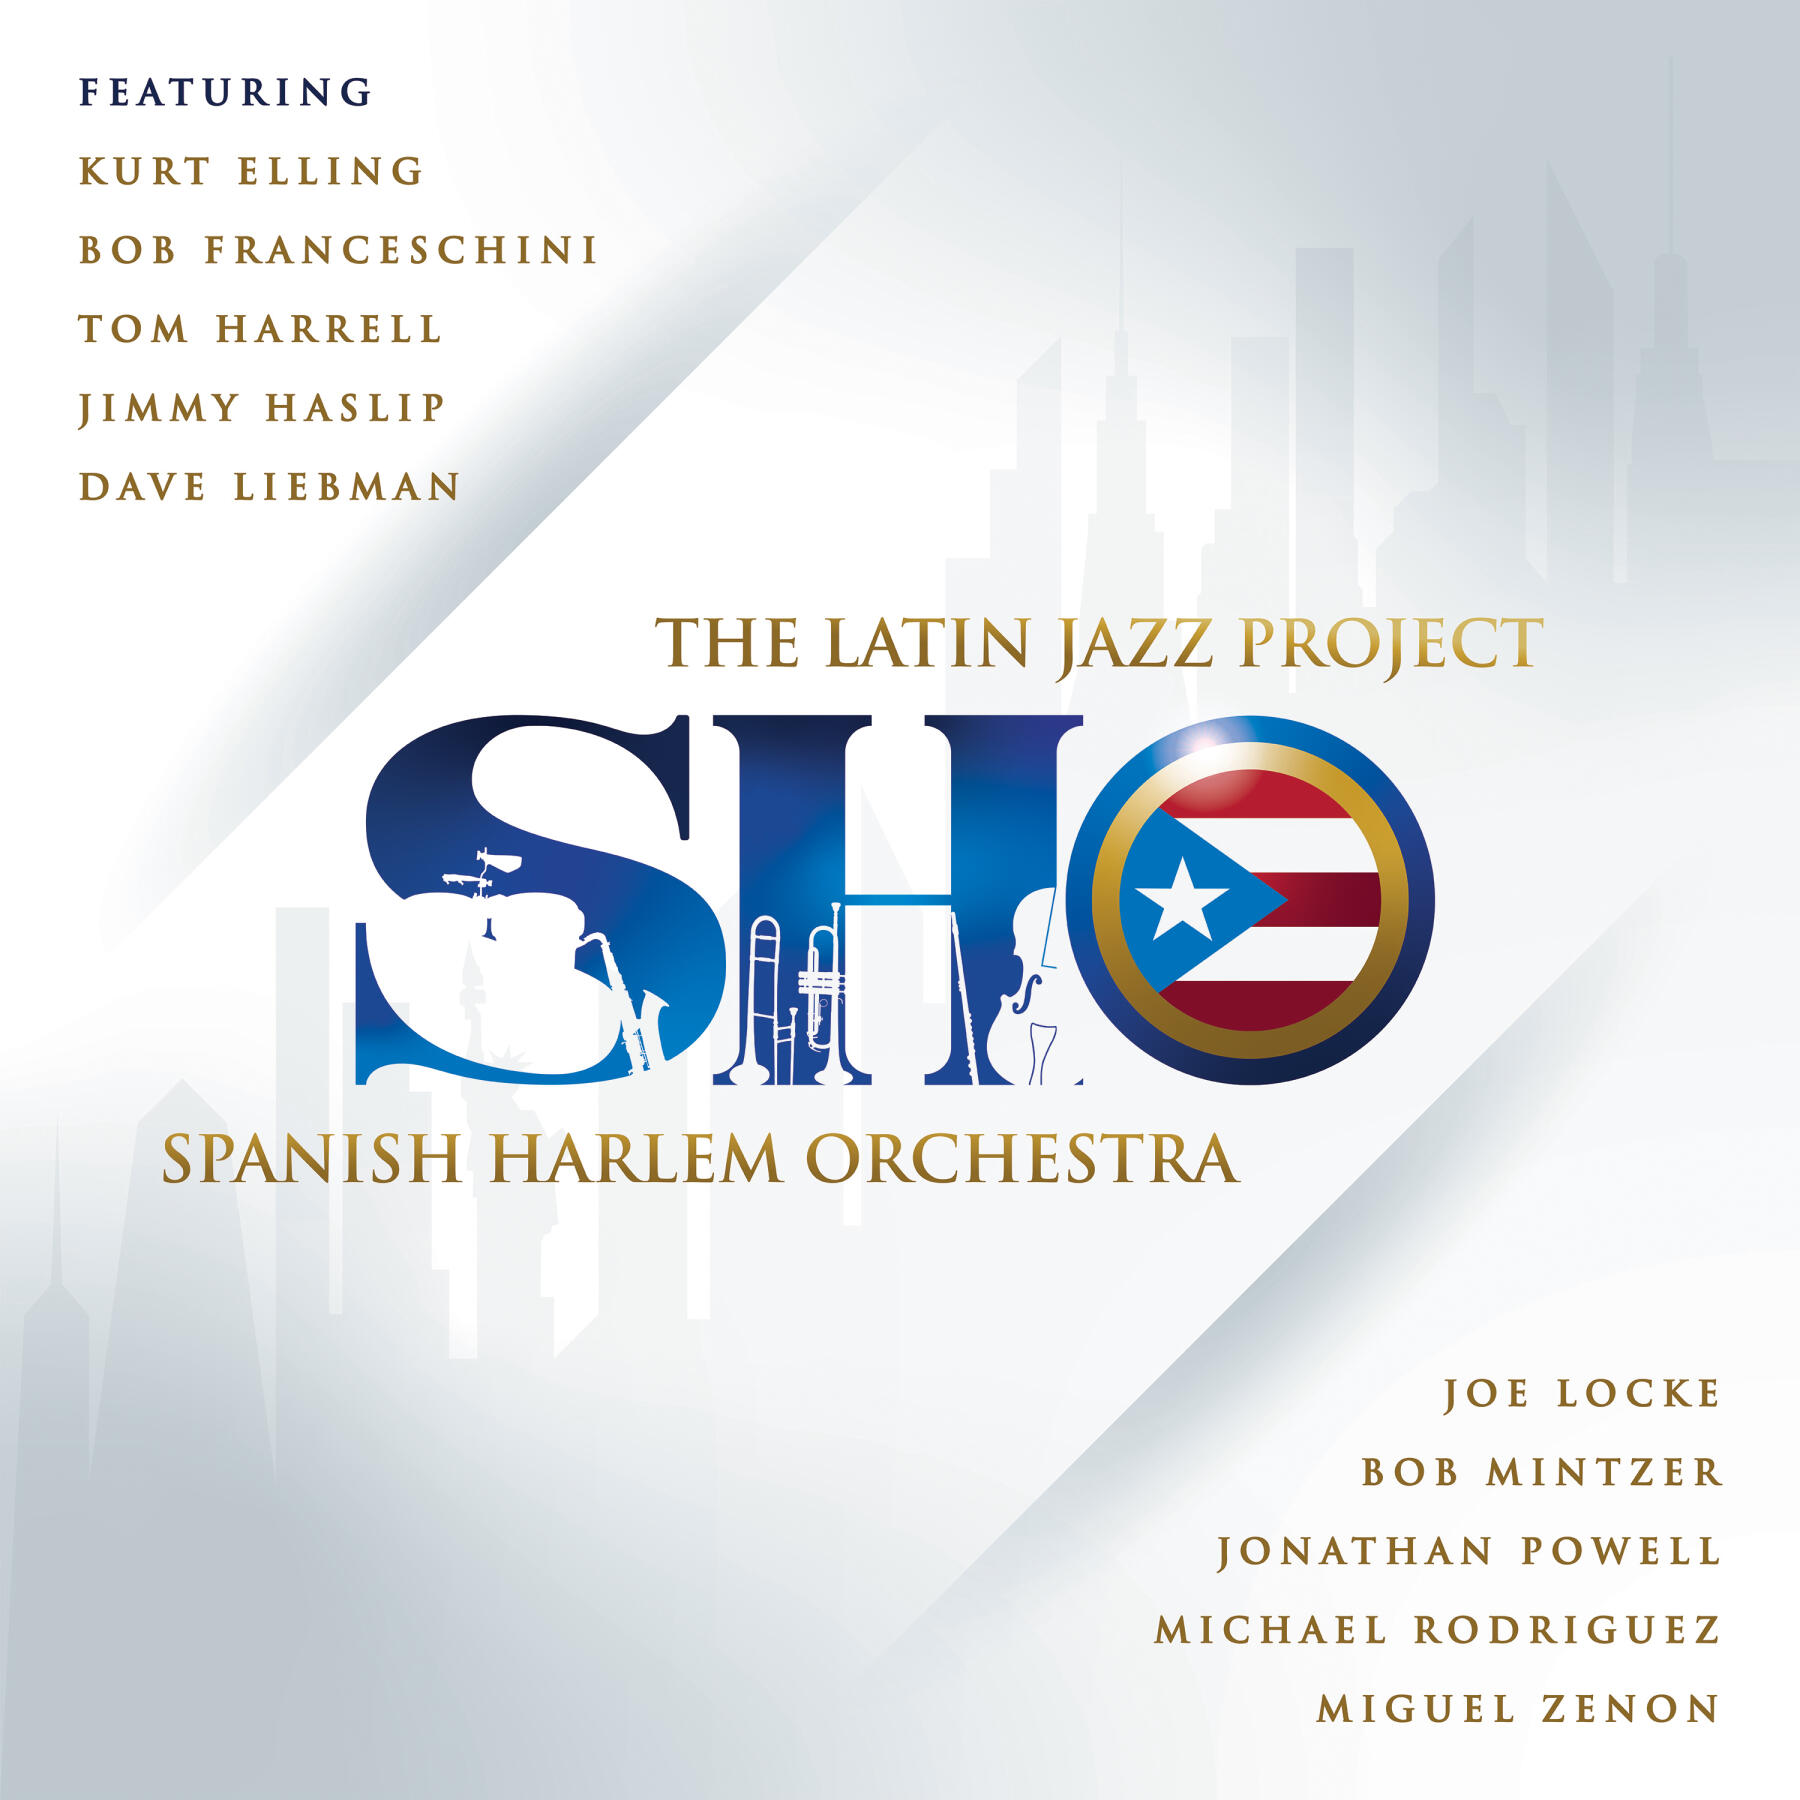 The Latin Jazz Project